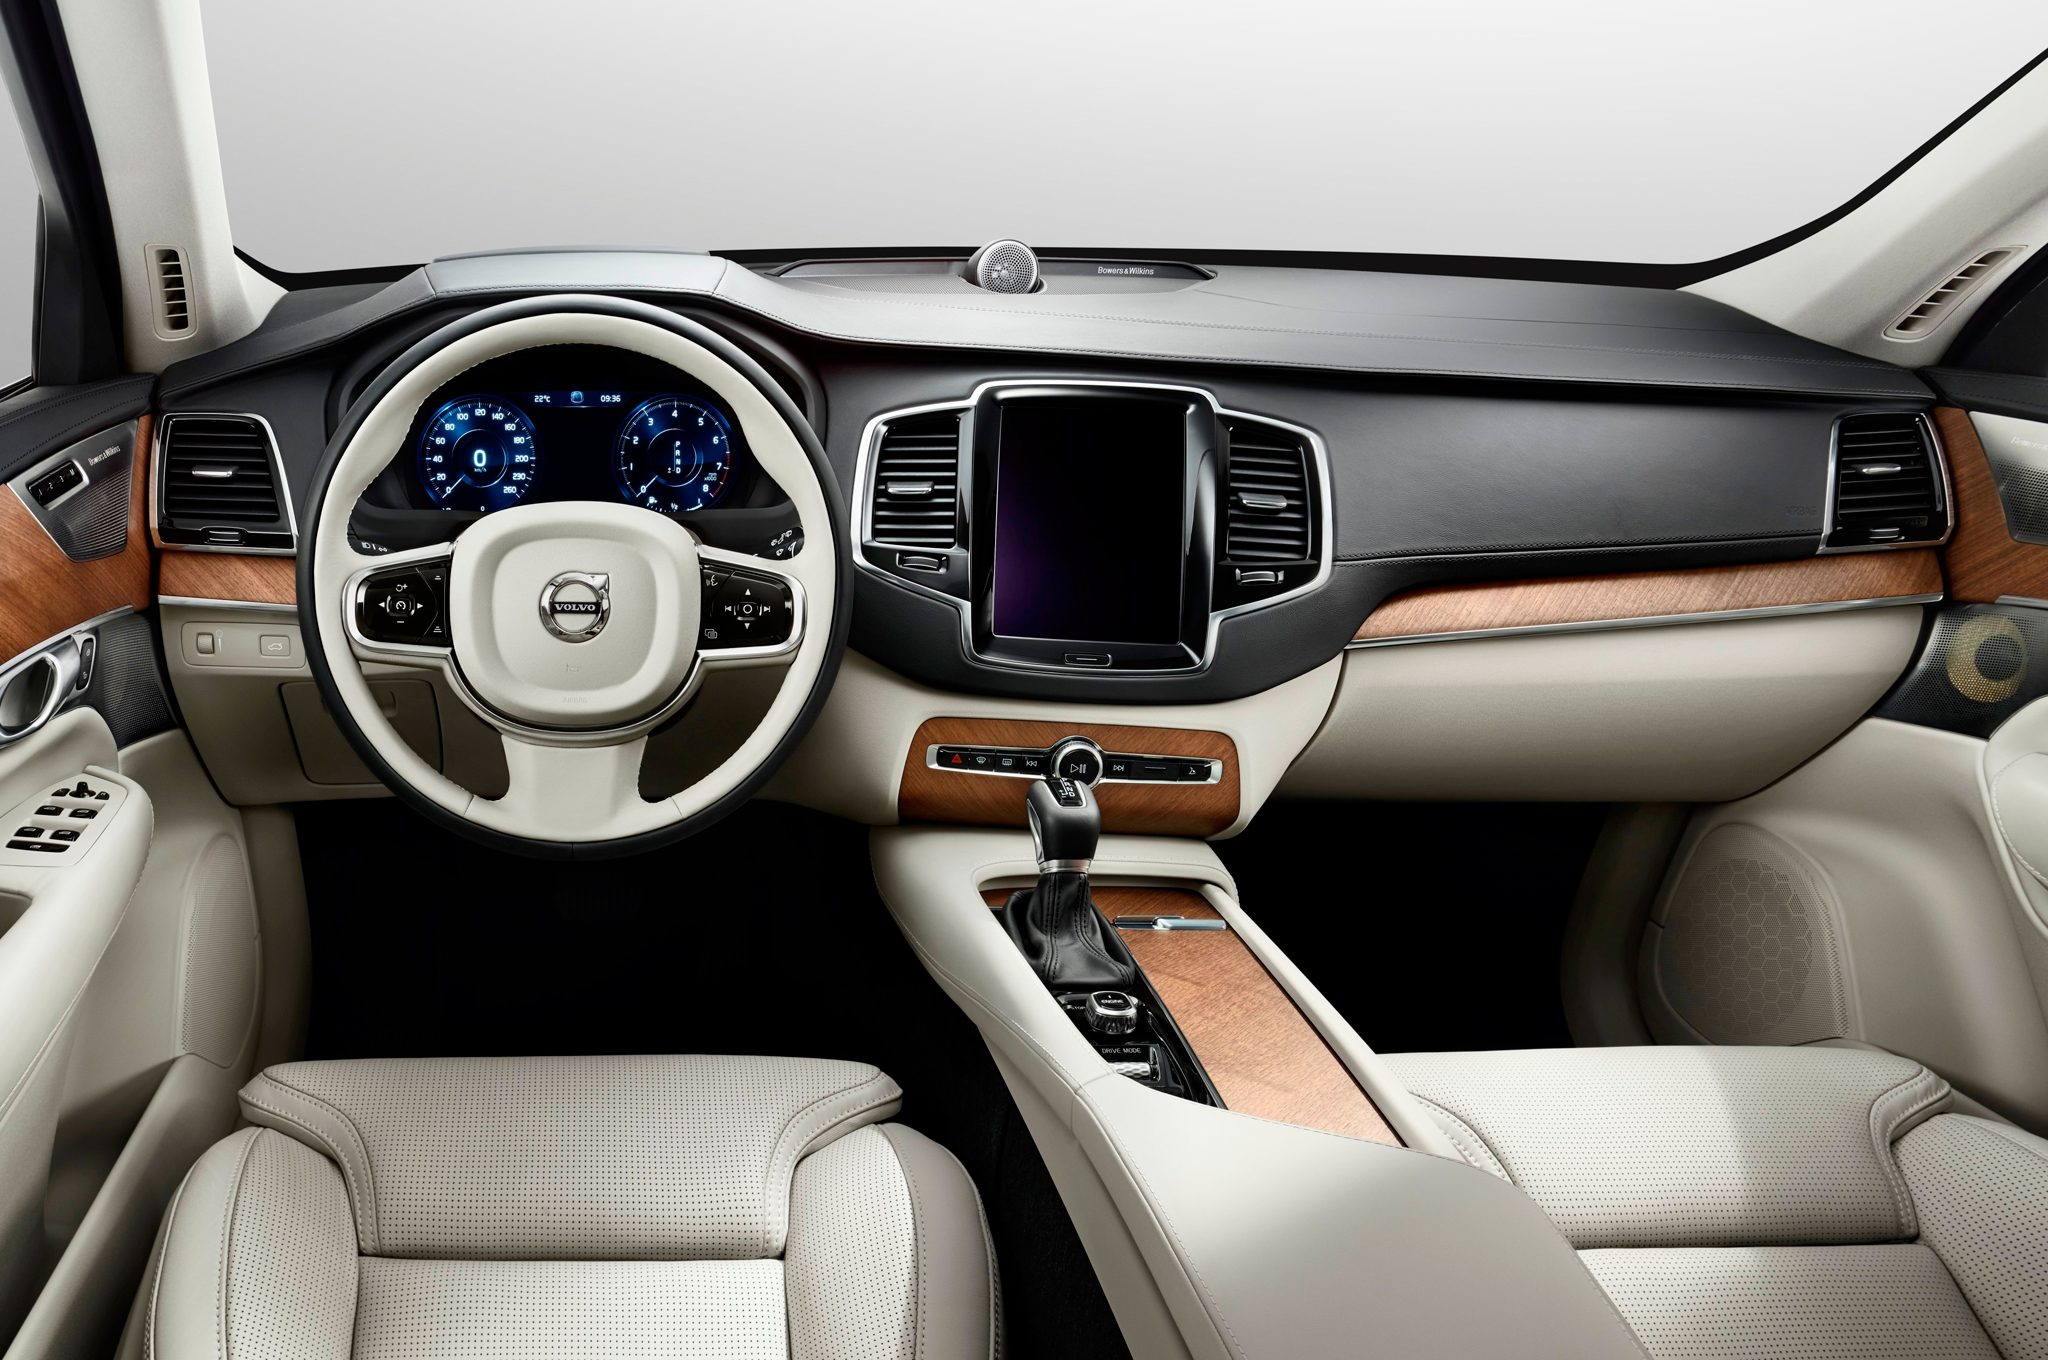 2016 Volvo Xc90 T8 Interior Preview (Photo 12 of 18)